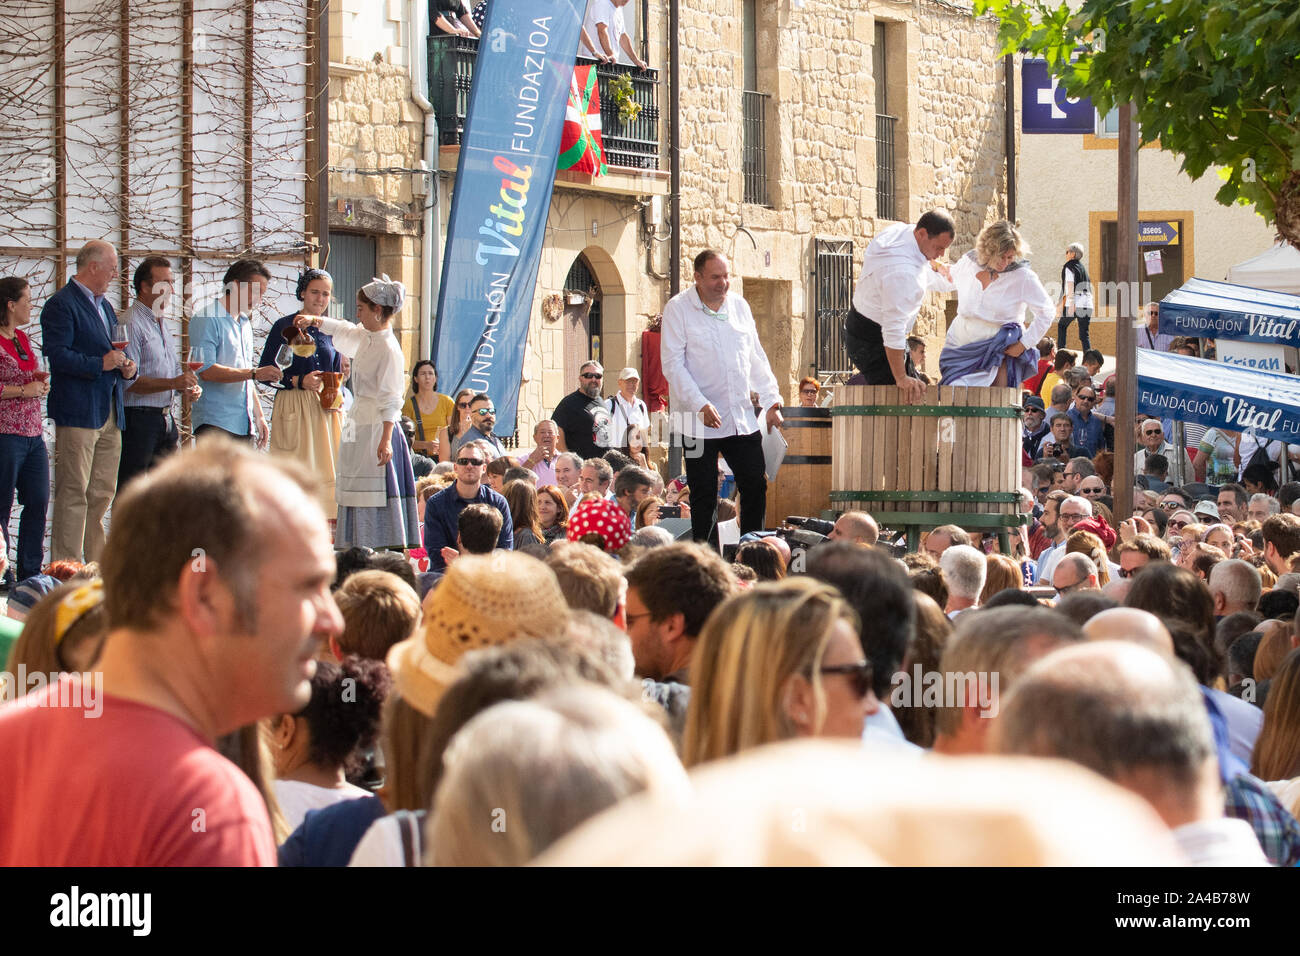 Rioja Alavesa wine harvest festival 2019 - grape stomping and tasting of the first must (grape juice from the crushed grapes), Banos de Ebro, Spain Stock Photo